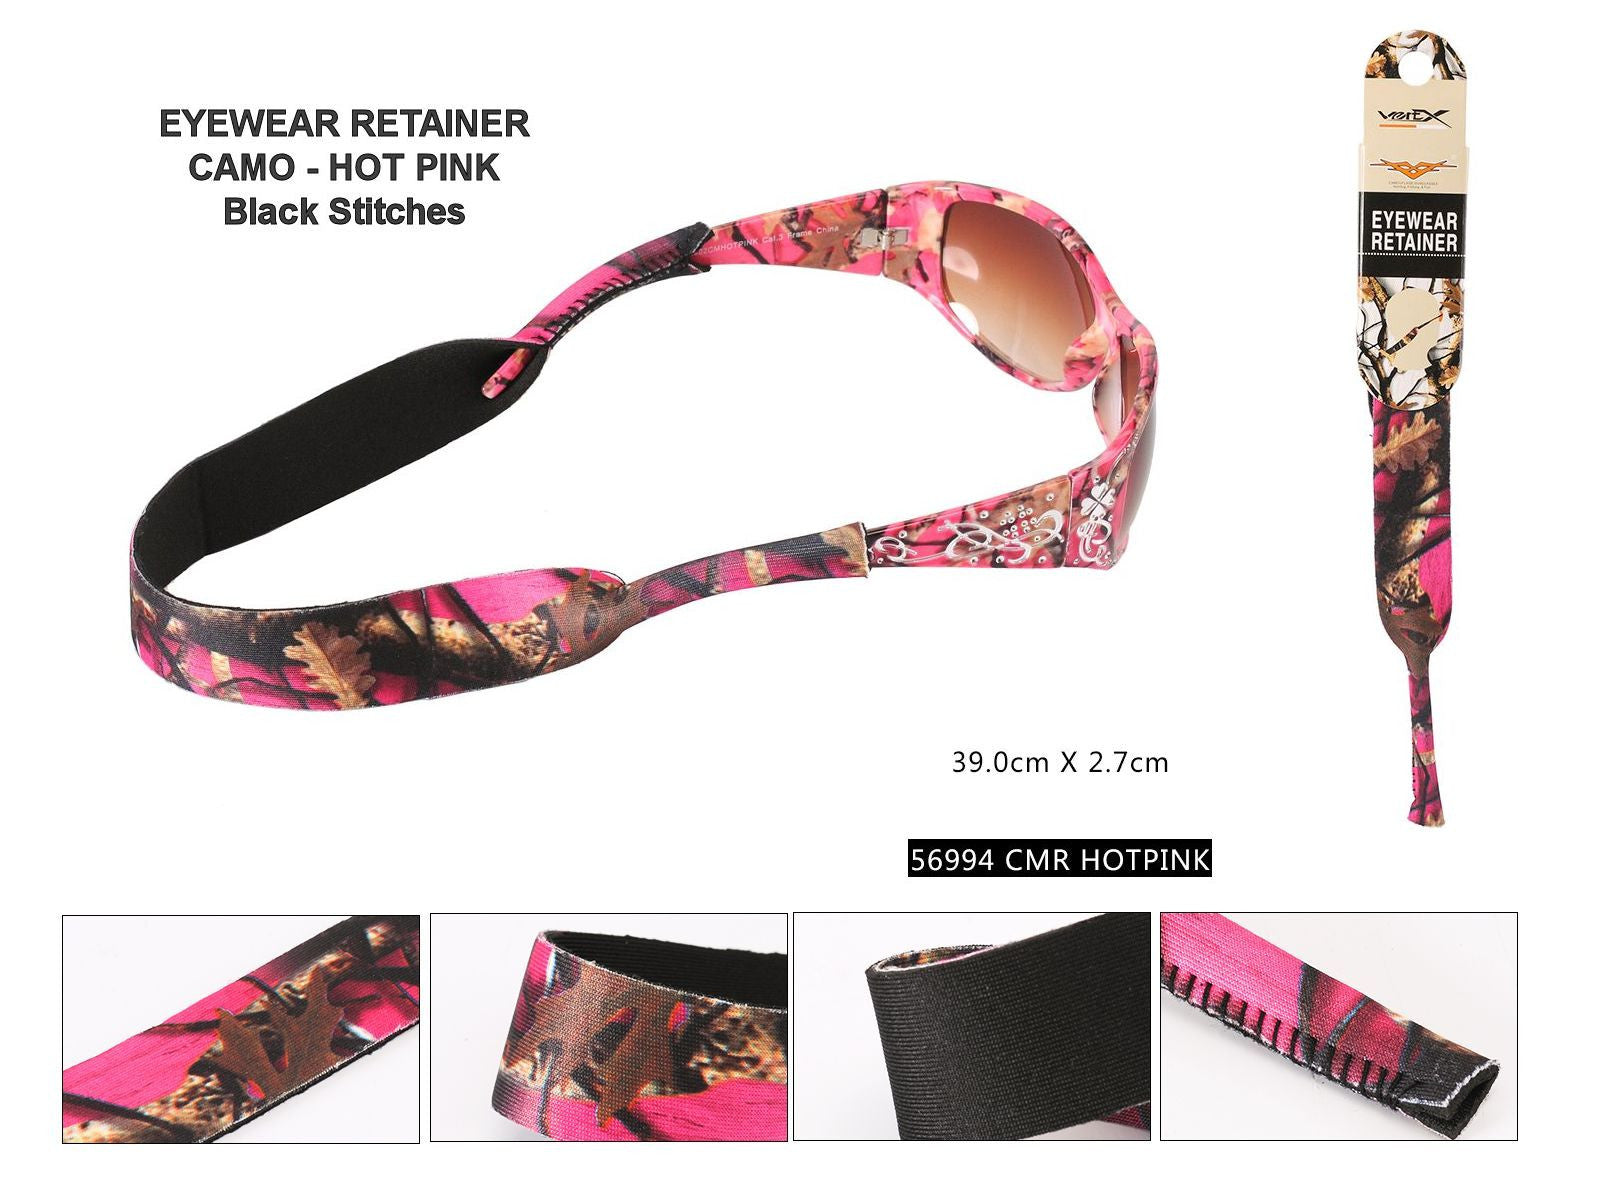 A56994-HOT PINK CAMO RETAINERS